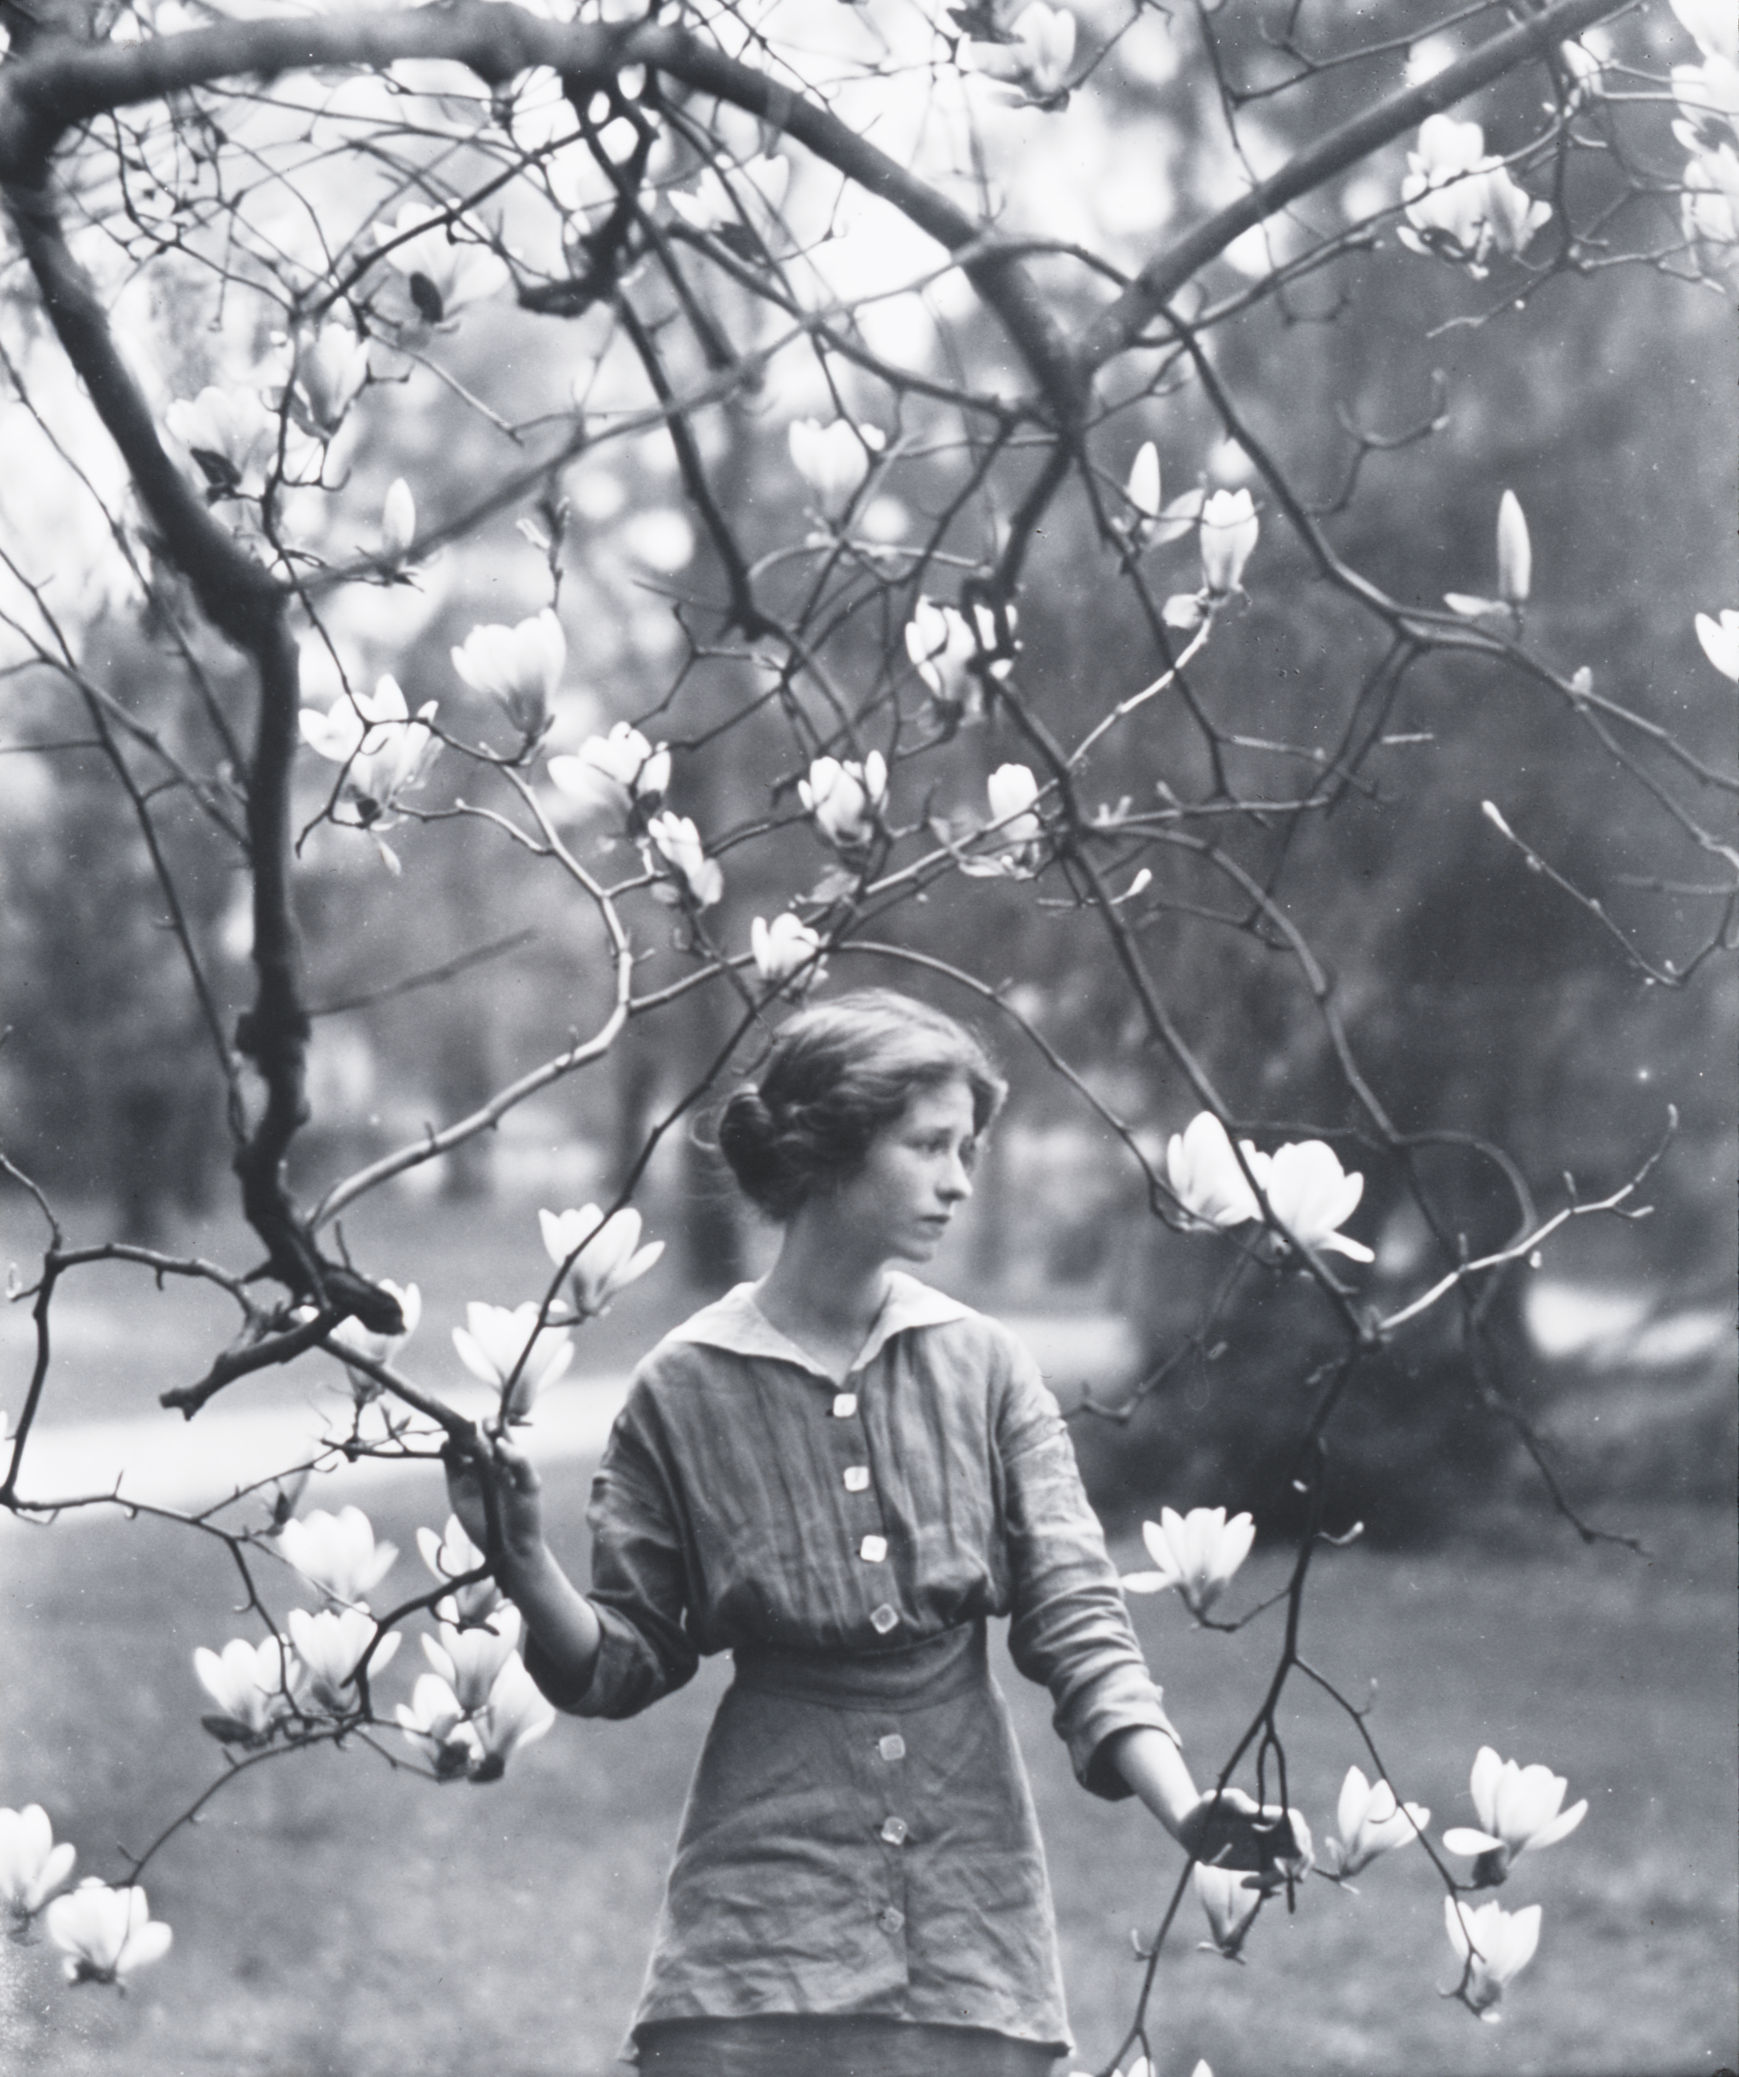 Photograph of Edna St. Vincent Millay